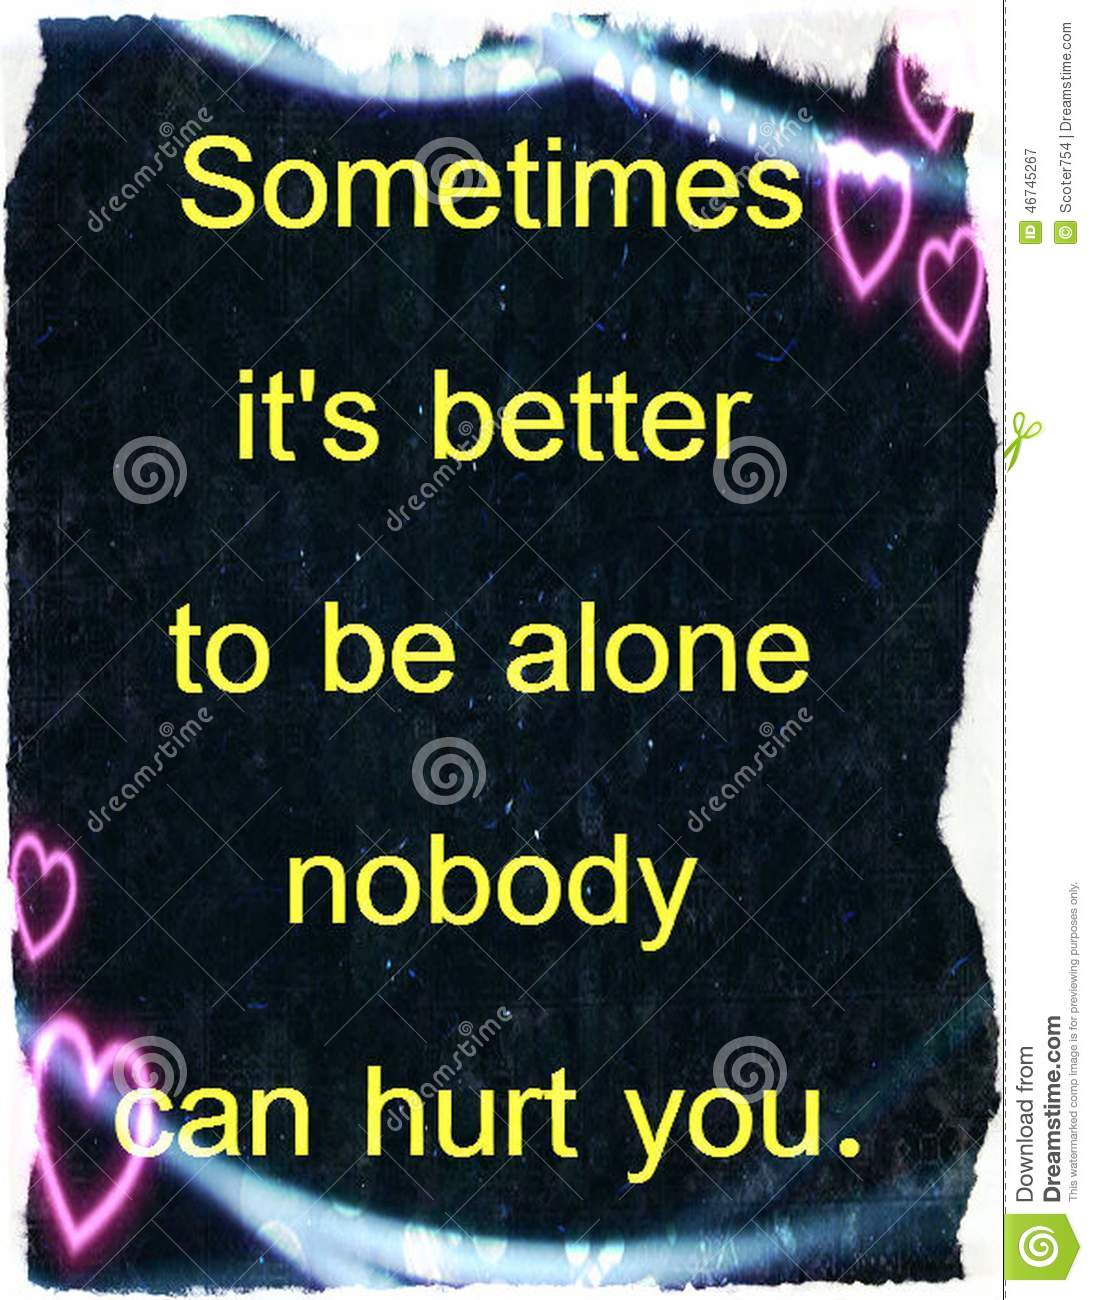 Quotes About Life Sometimes It S Better To Be Alone Nobody Can Hurt